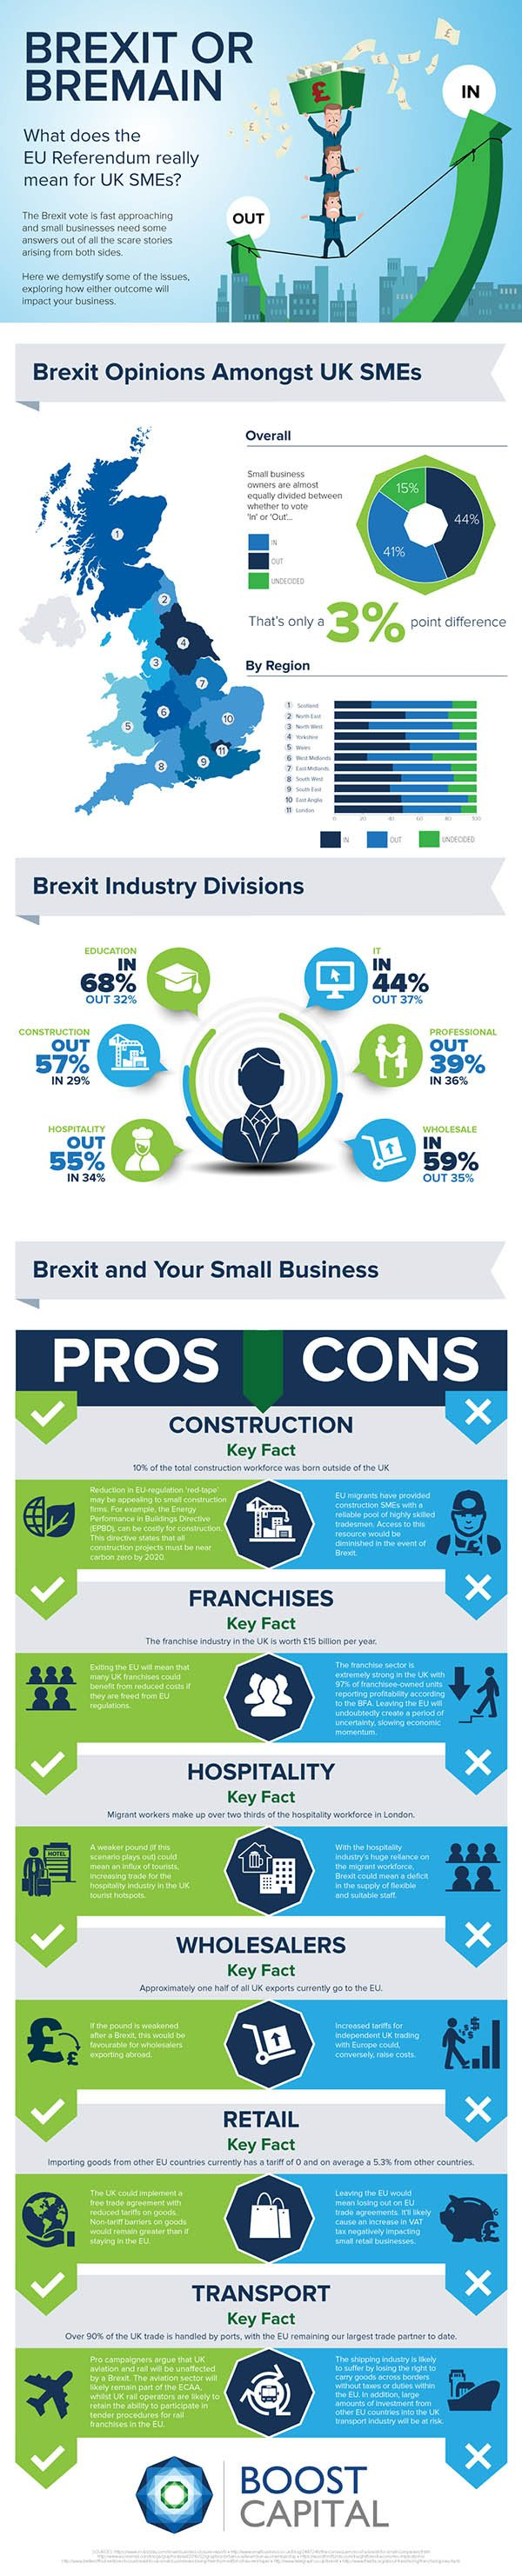 brexit-infographic-eu-referendum-guide-small-business